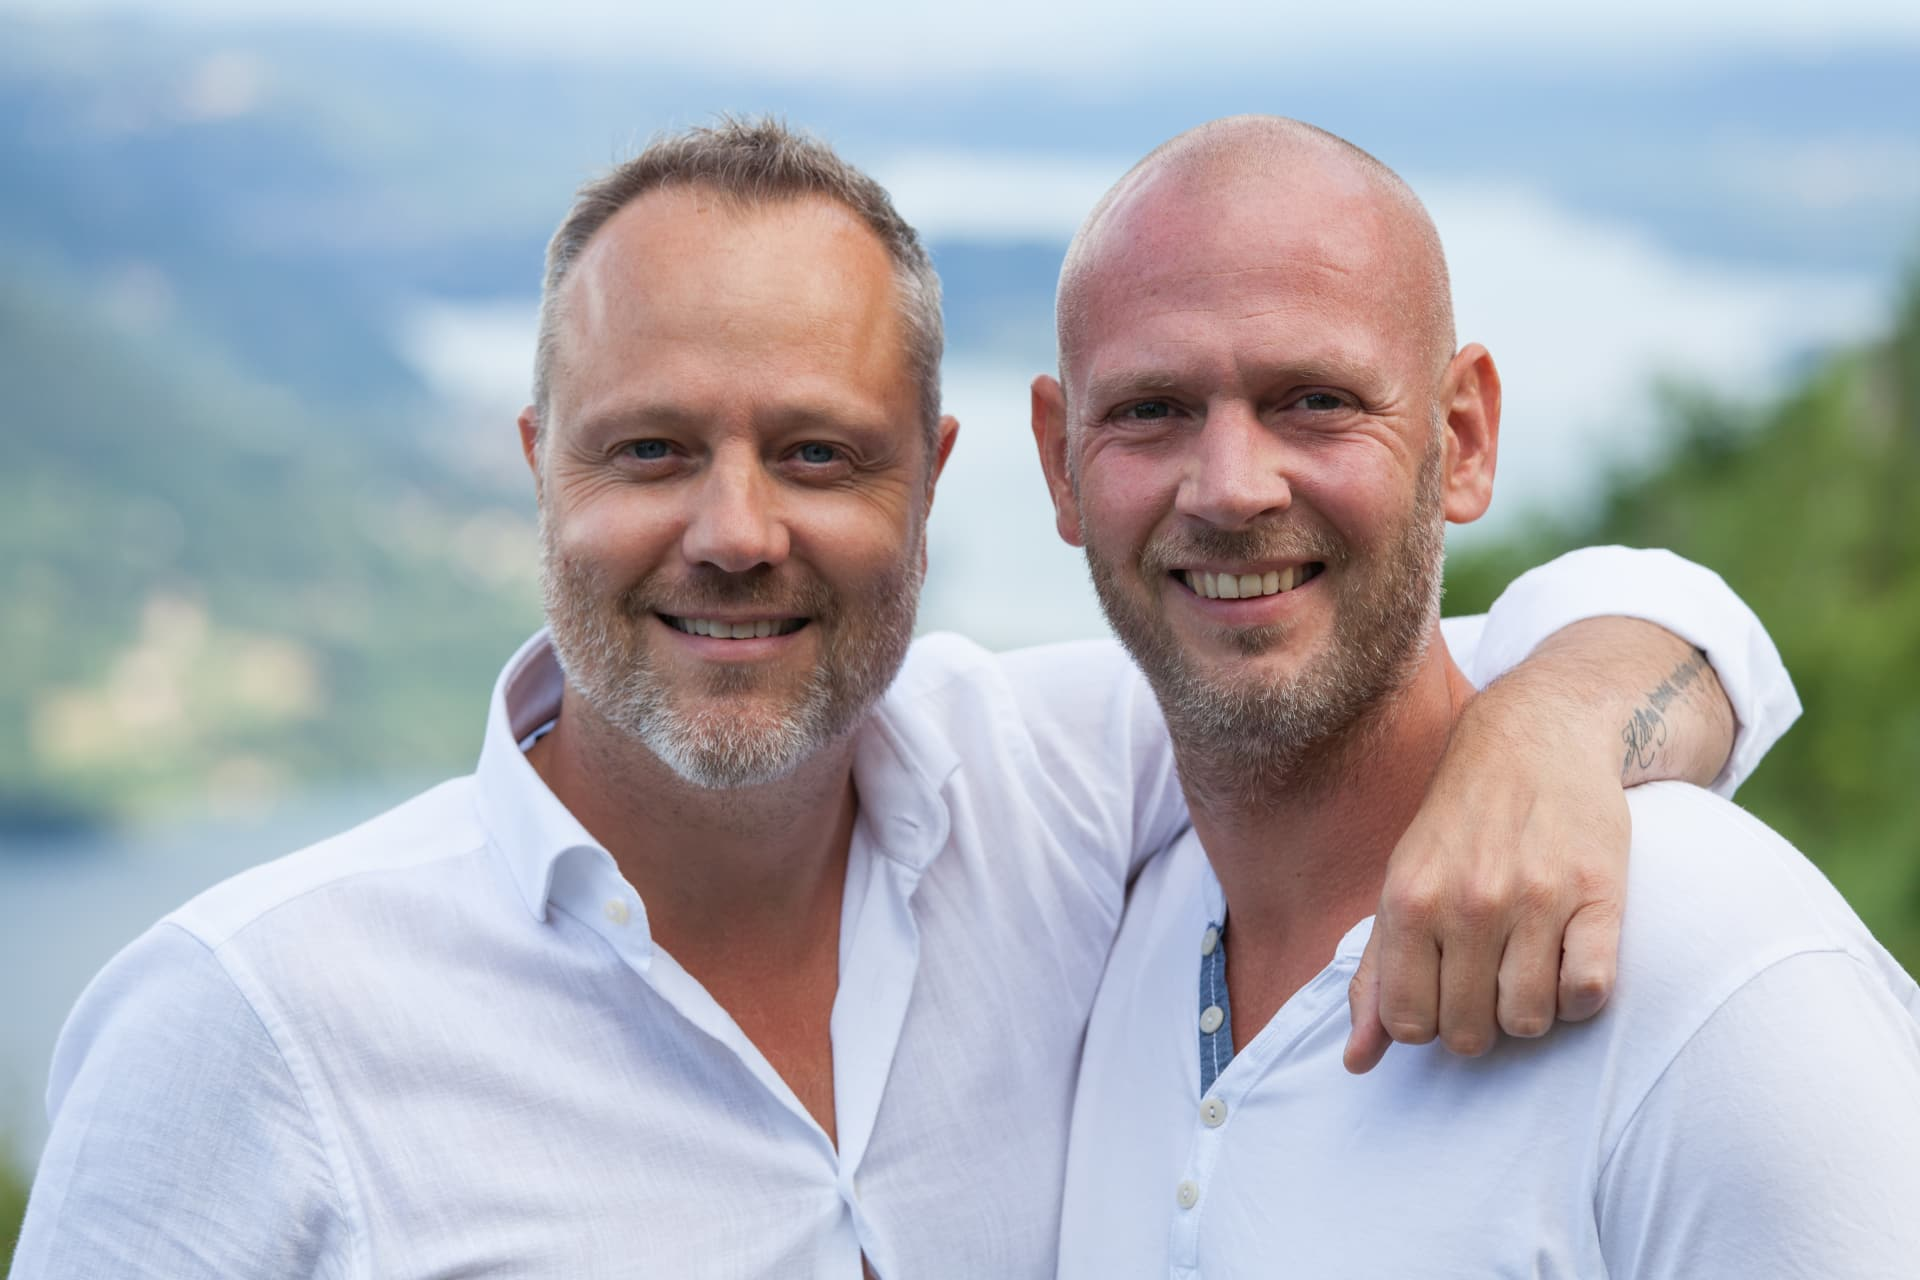 Wildrik Timmerman and Wouter Tavecchio founders of Mandali.